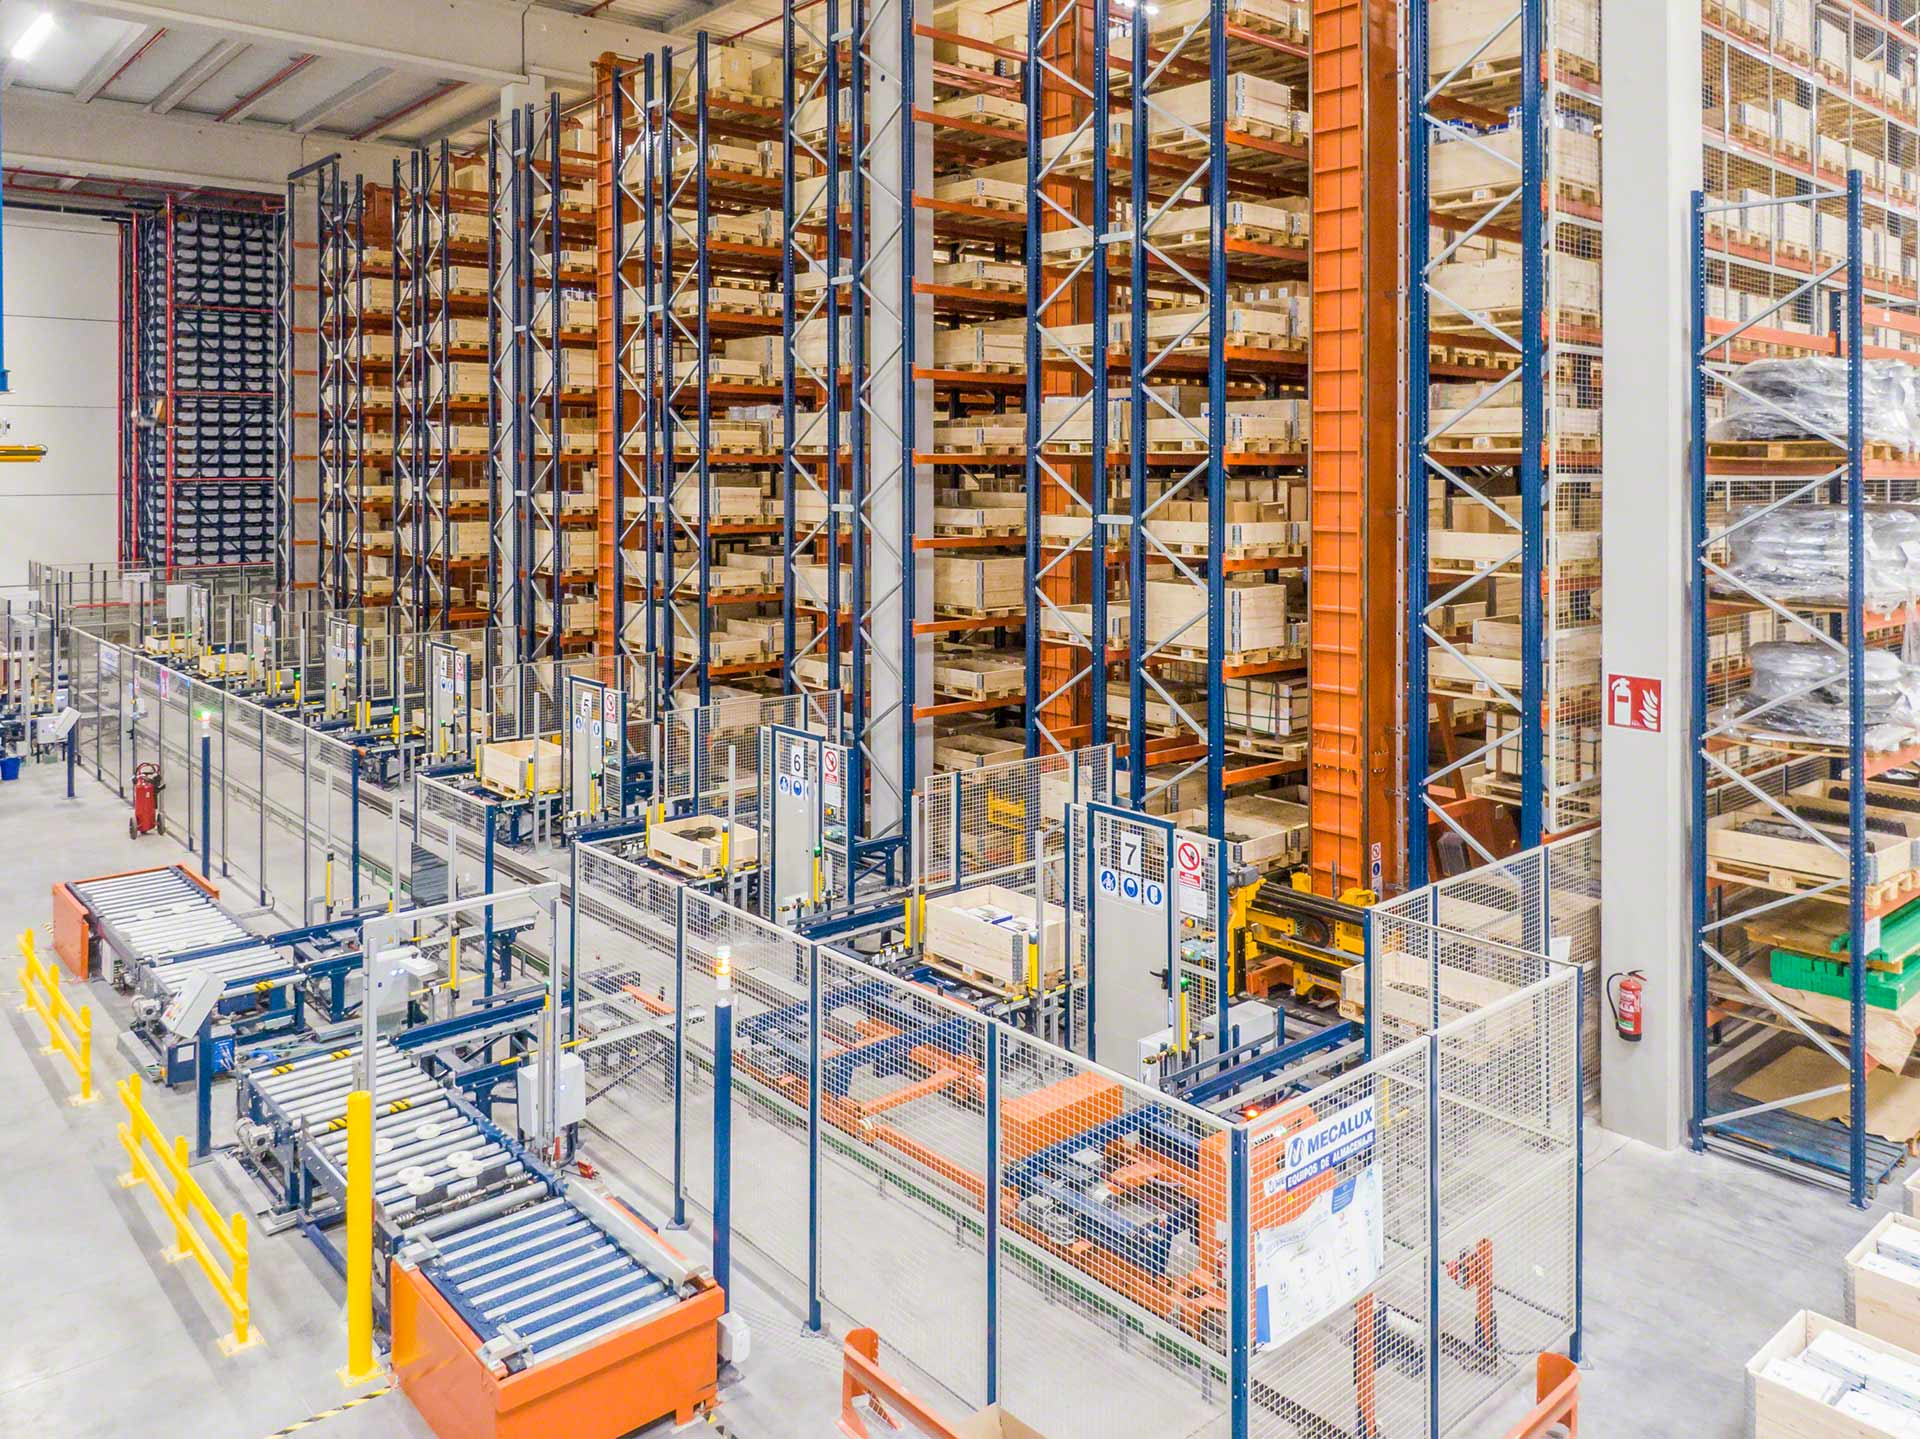 Automated storage and retrieval systems carry out advanced, safe goods management